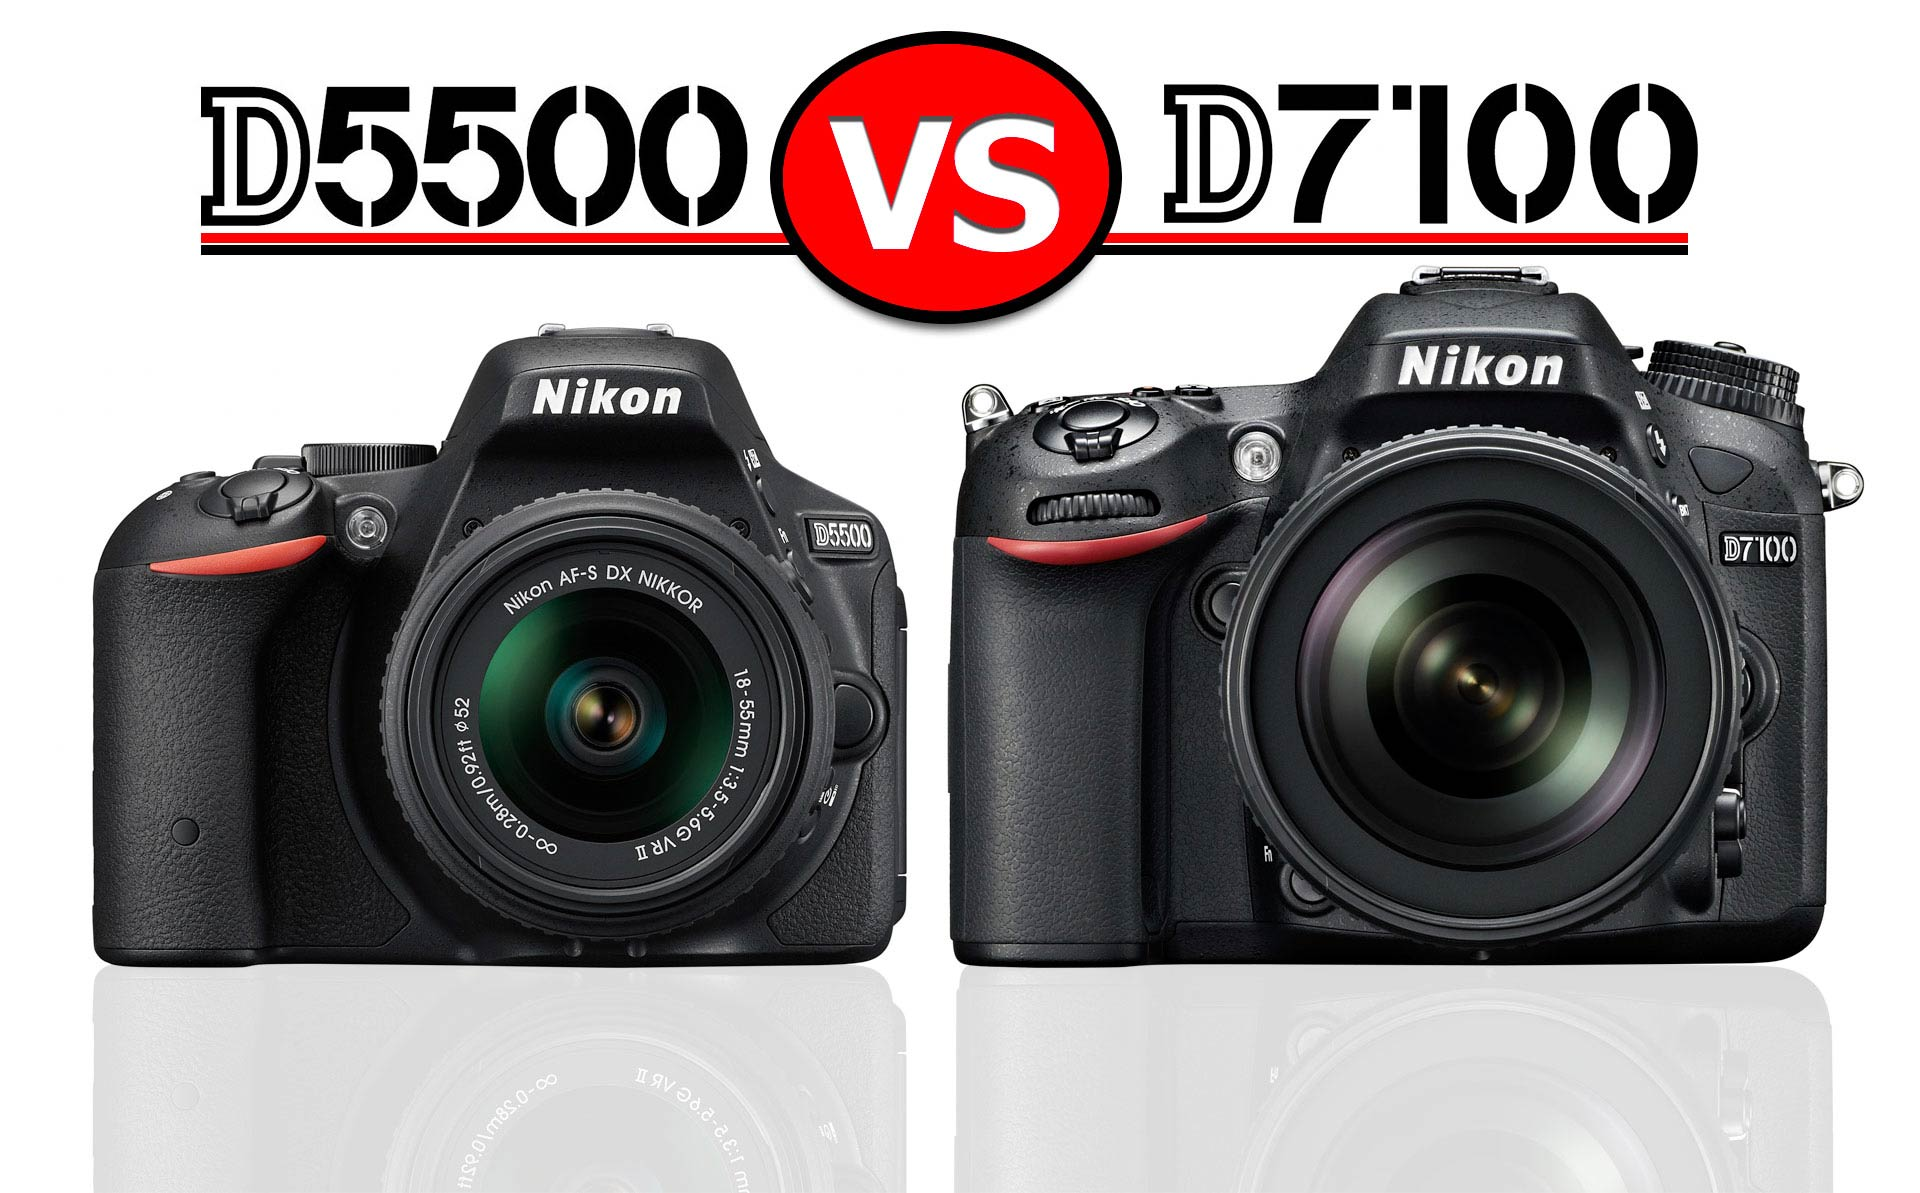 Nikon D5500 Vs D7200 >> Nikon D5500 vs D7100 : Which Should You Buy? – Light And ...